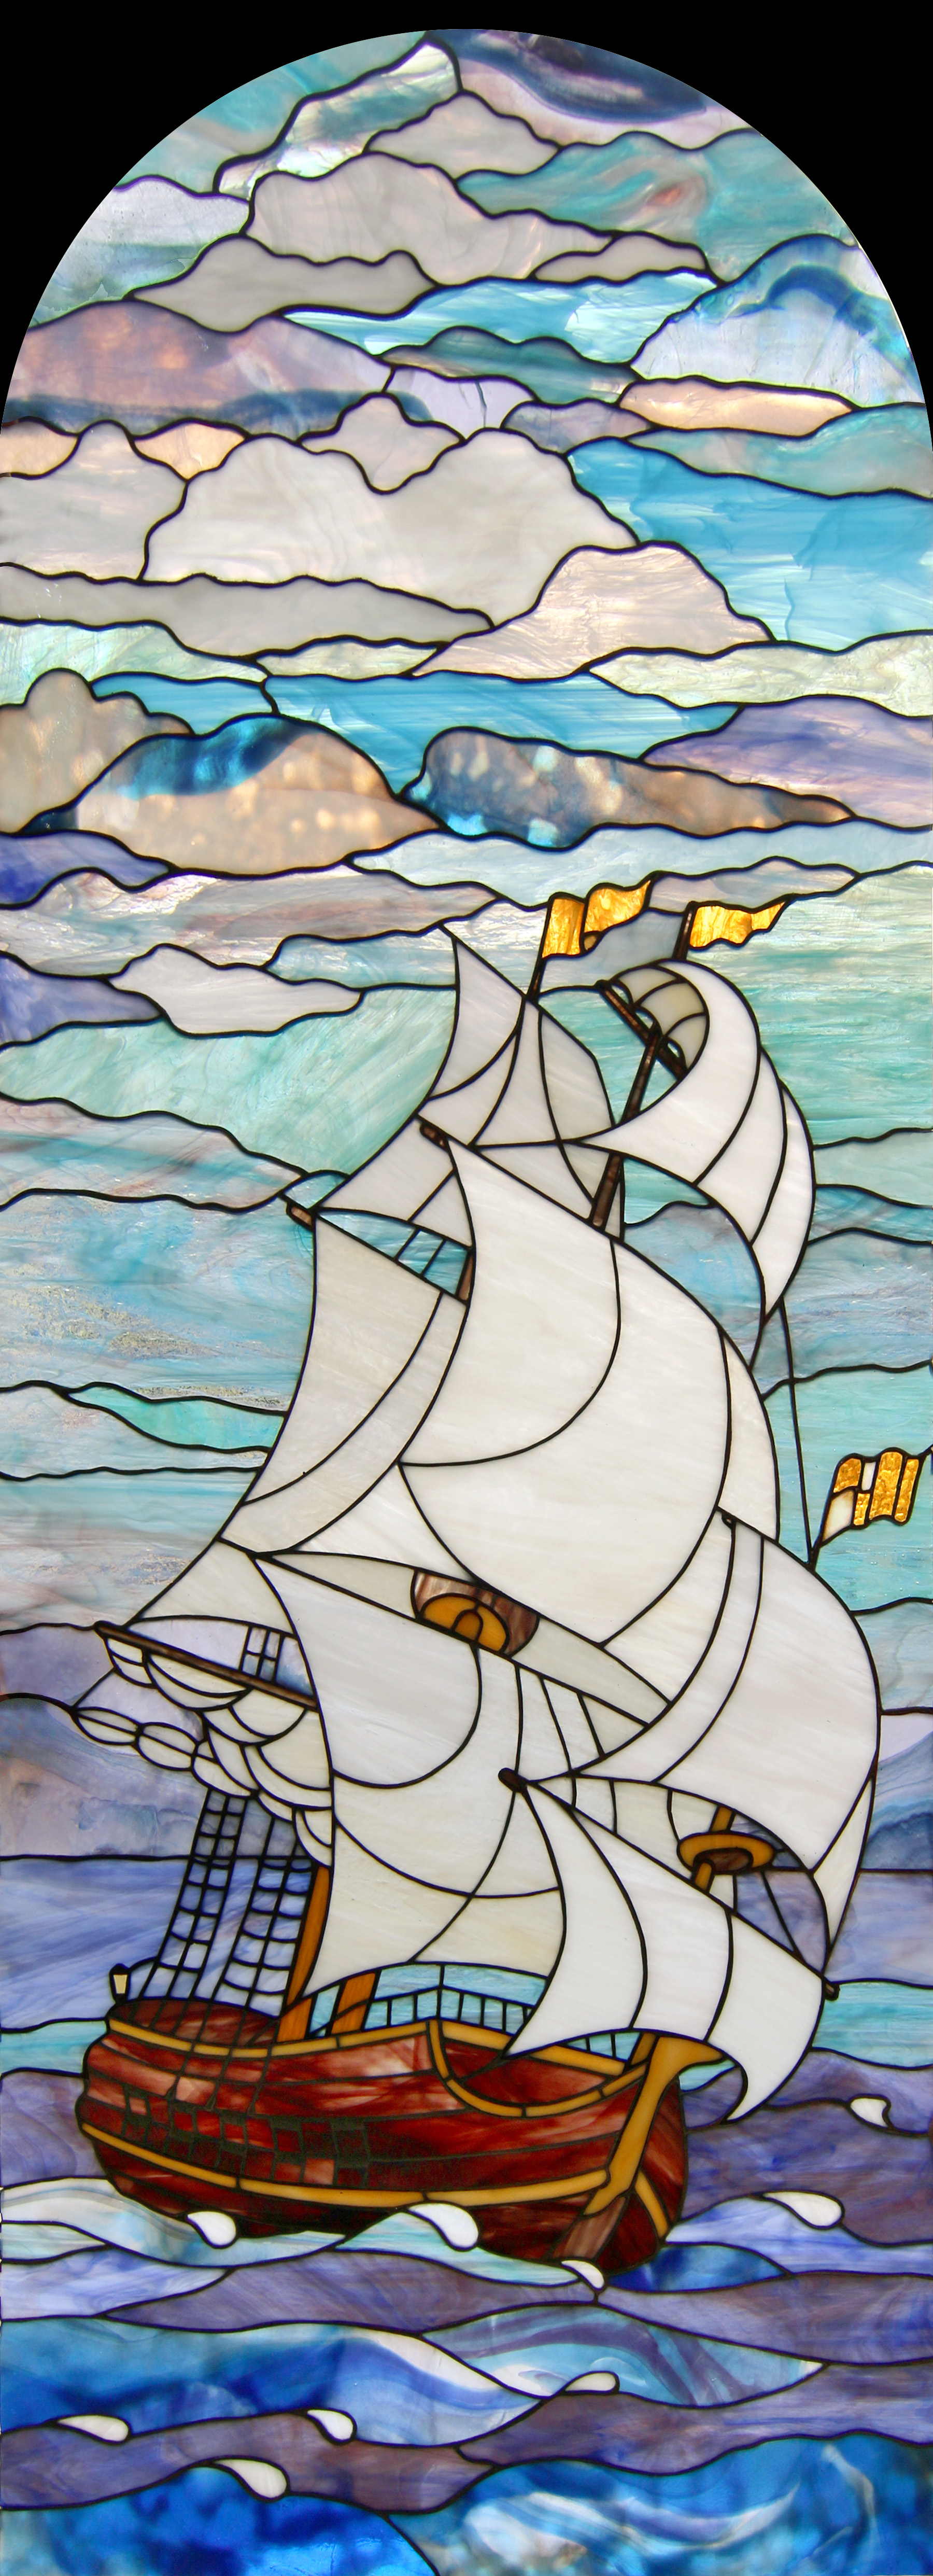 Tiffany Stained Glass Sailboat 3